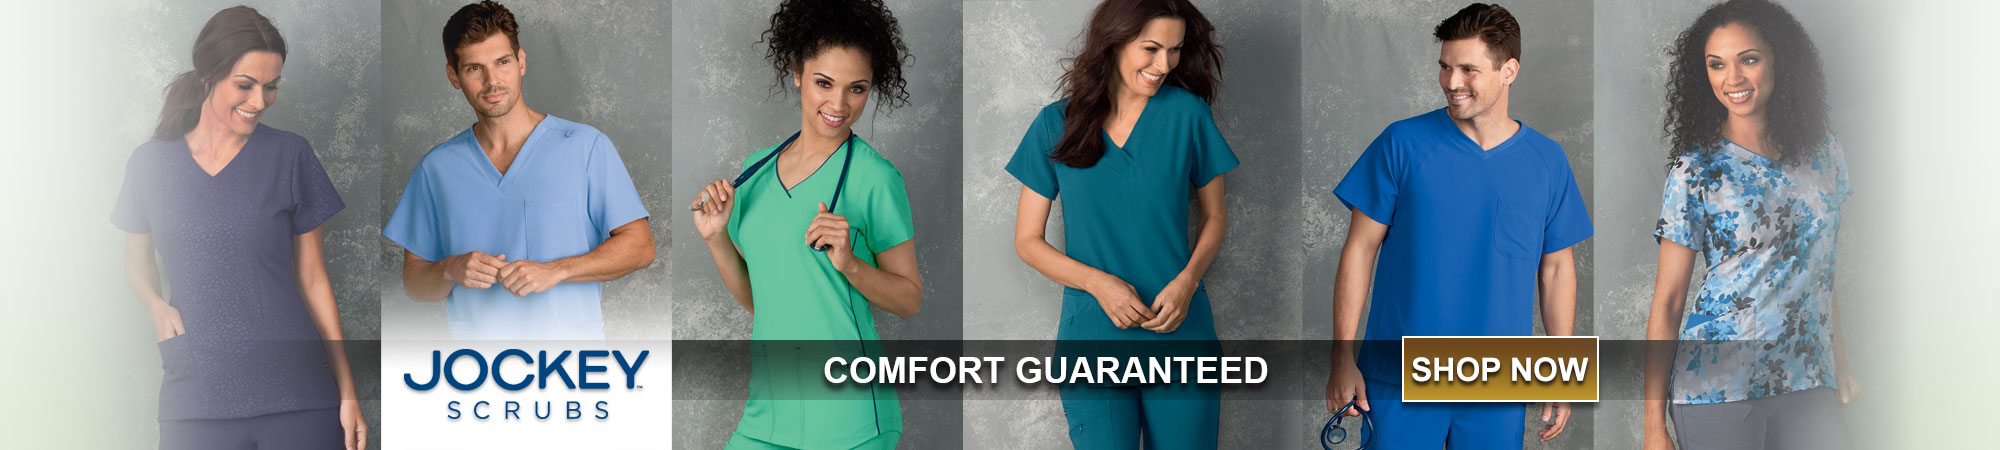 Jockey Scrubs Apparel